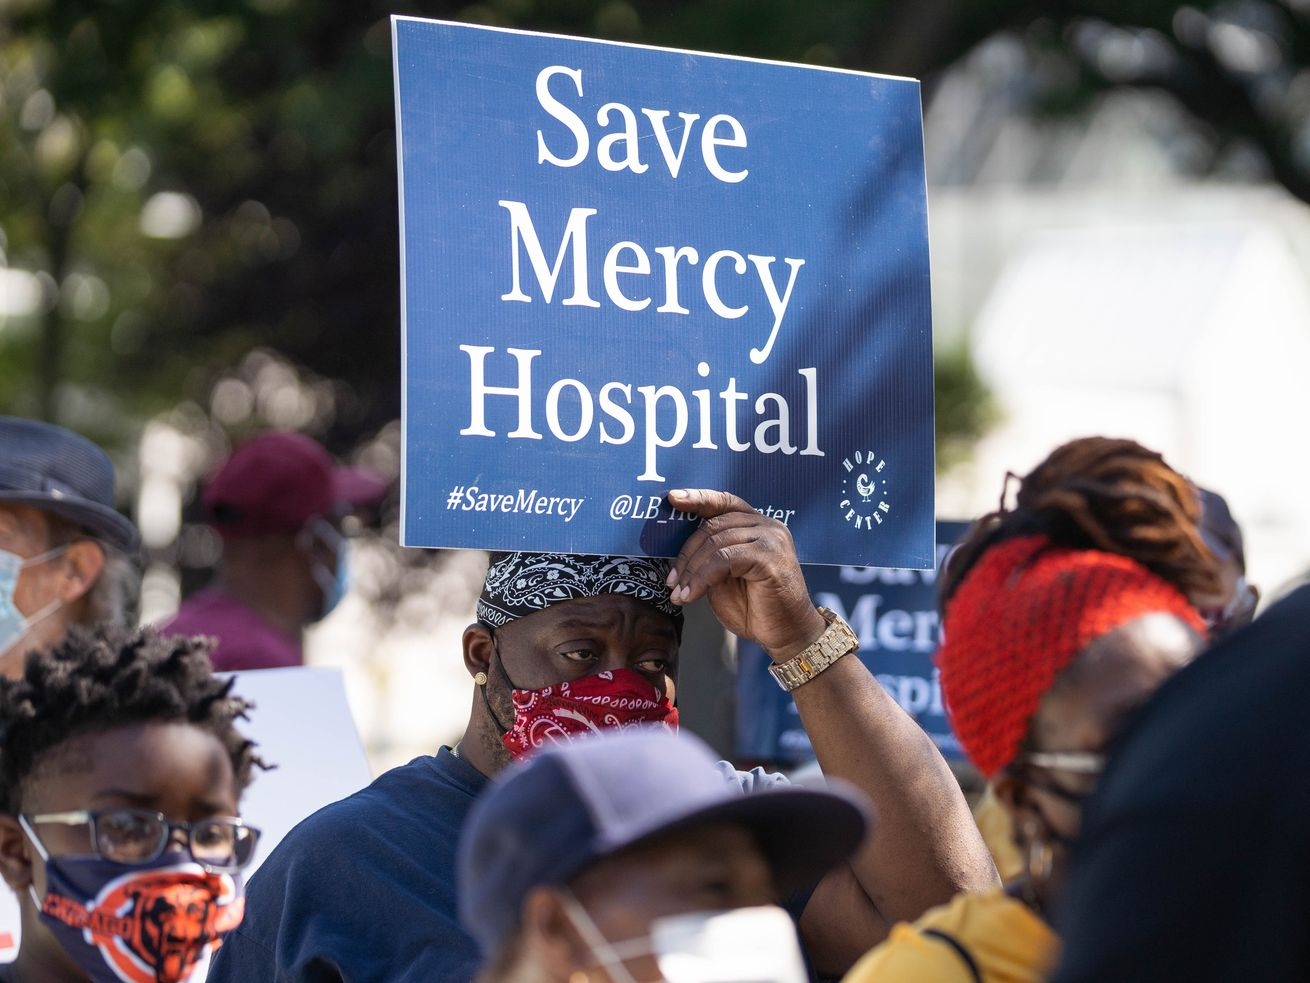 Local officials, community activists and Mercy Hospital and Medical Center employees attend a protest outside Mercy Hospital and Medical Center in Bronzeville Thursday morning, Sept. 3, 2020. They demanded Gov. J.B. Pritzker and Mayor Lori Lightfoot to keep the hospital open, saying its closure will further increase the inequities in Black and Brown communities. The facility is set to close in 2021. | Pat Nabong/Sun-Times